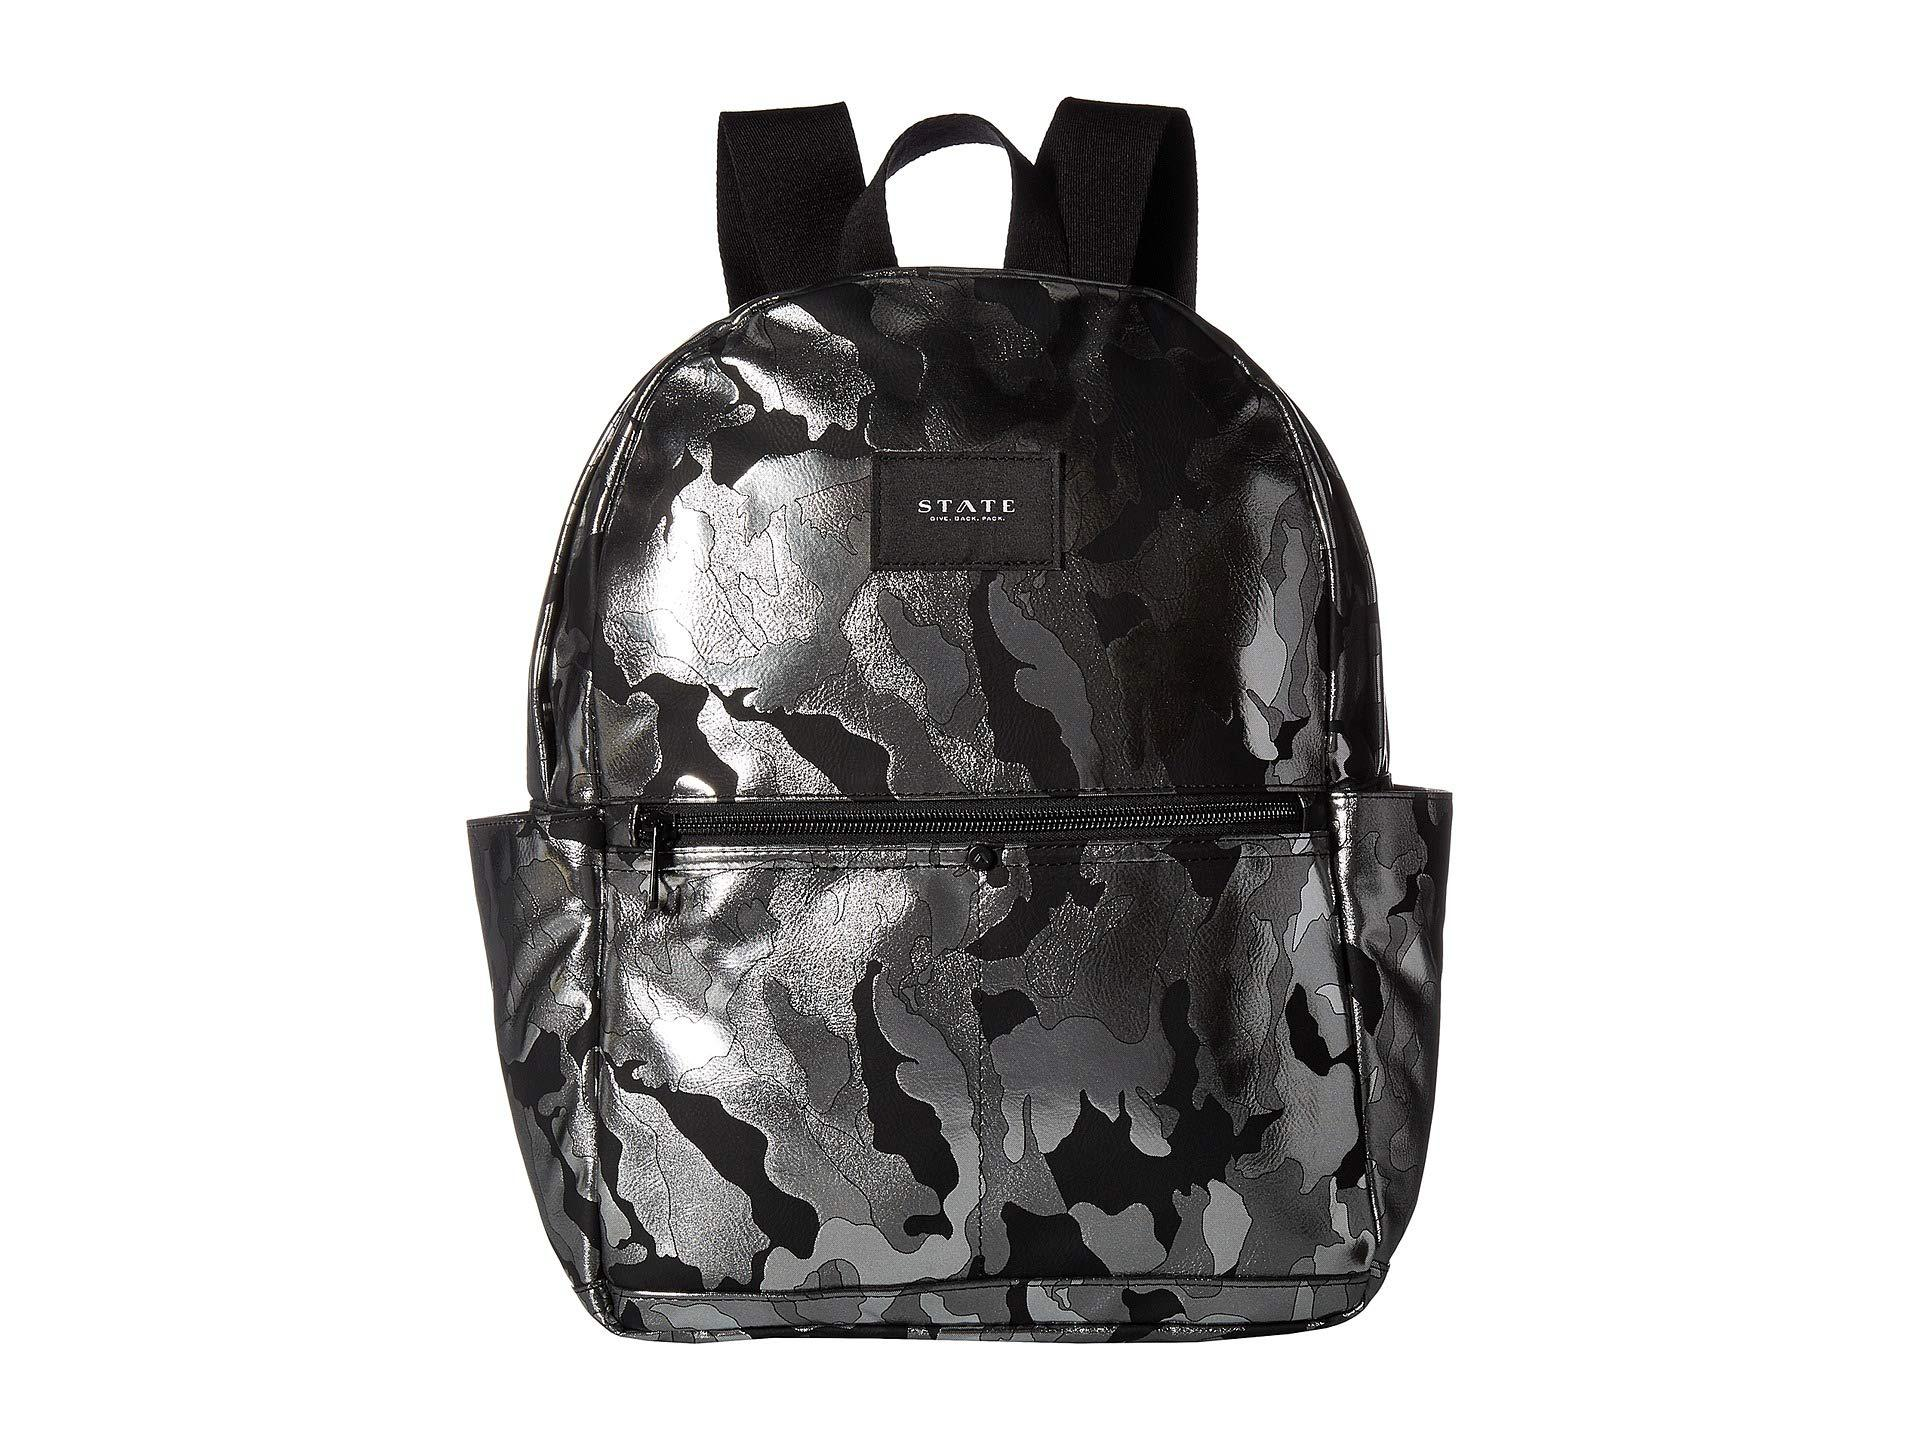 f0ed5b5d7e3e Lyst - State Bags Metallic Camo Williams P Backpack (black Camo ...